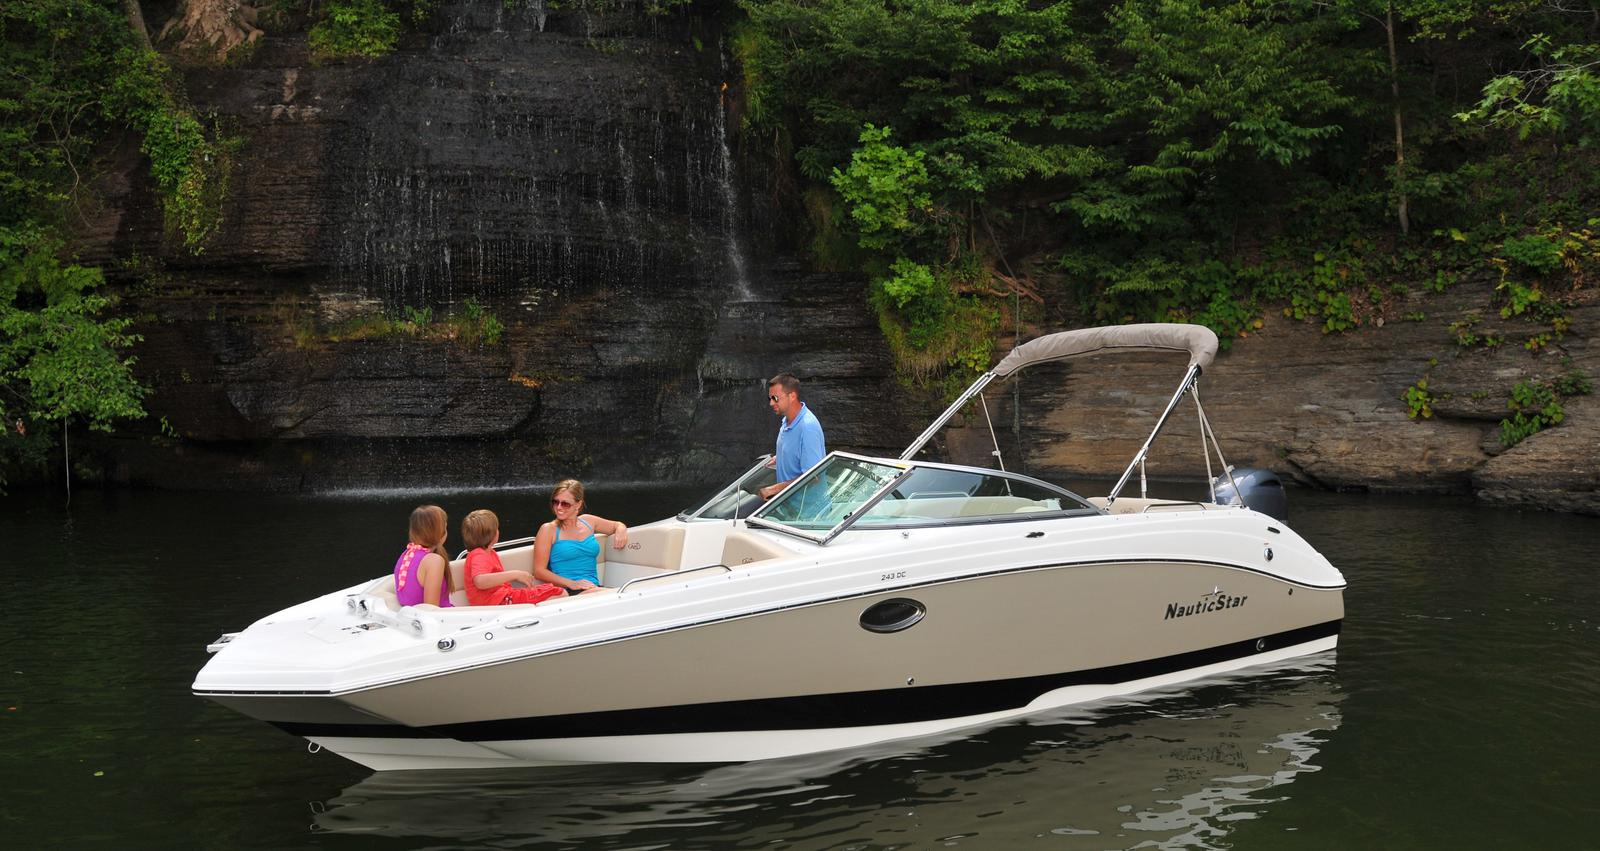 Family riding in their NauticStar deck boat near a waterfall